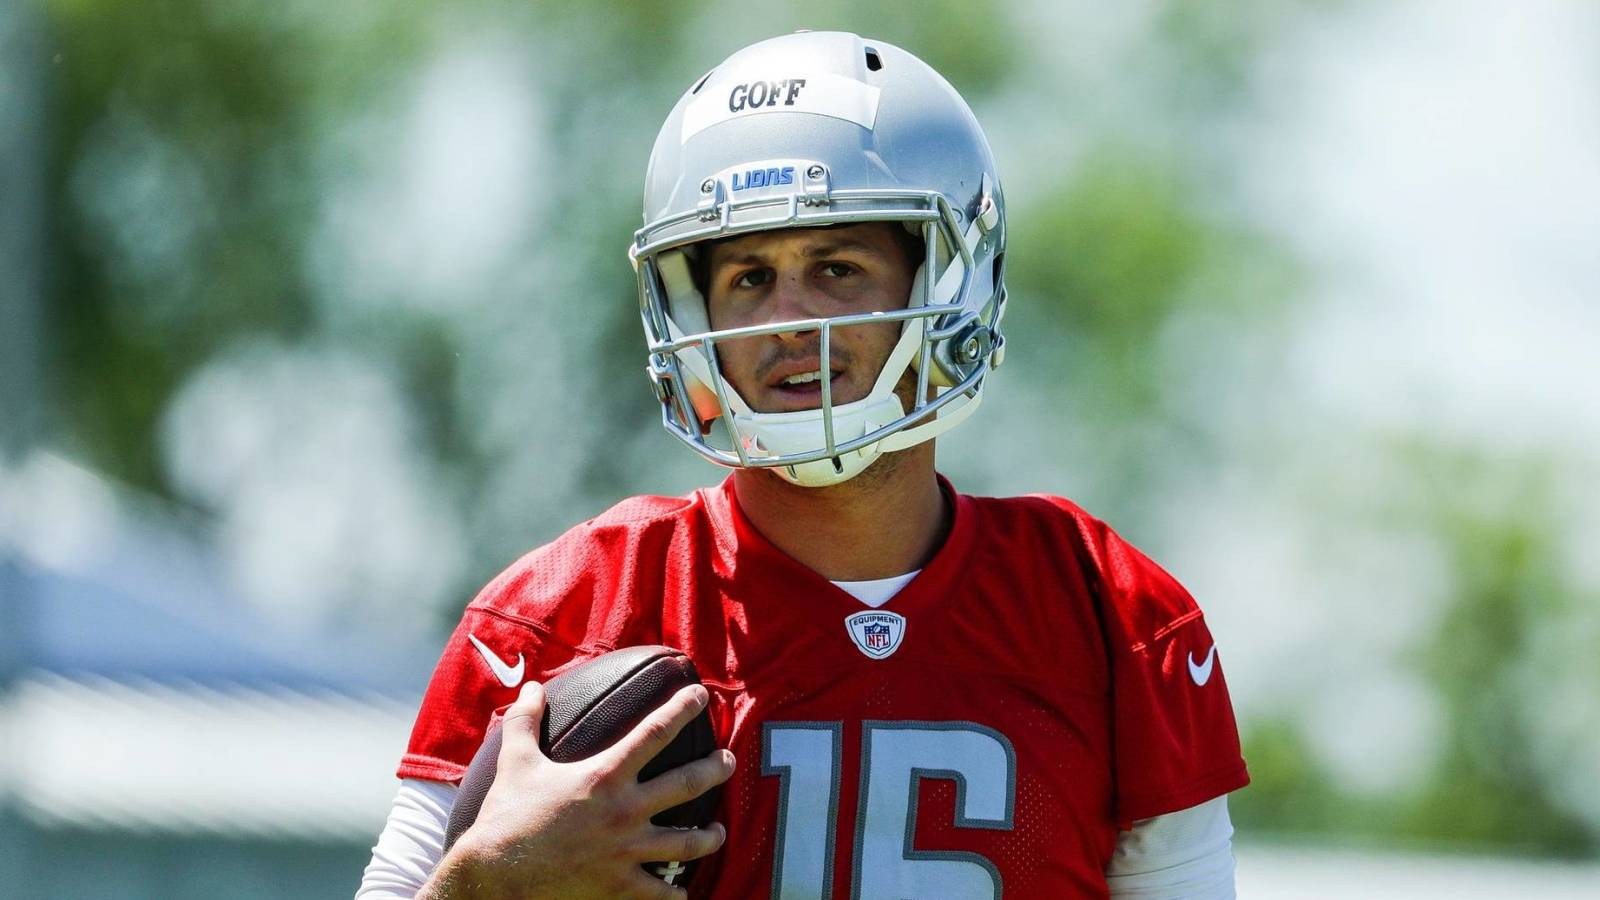 Lions OC: an 'absolute pleasure' to work with Jared Goff